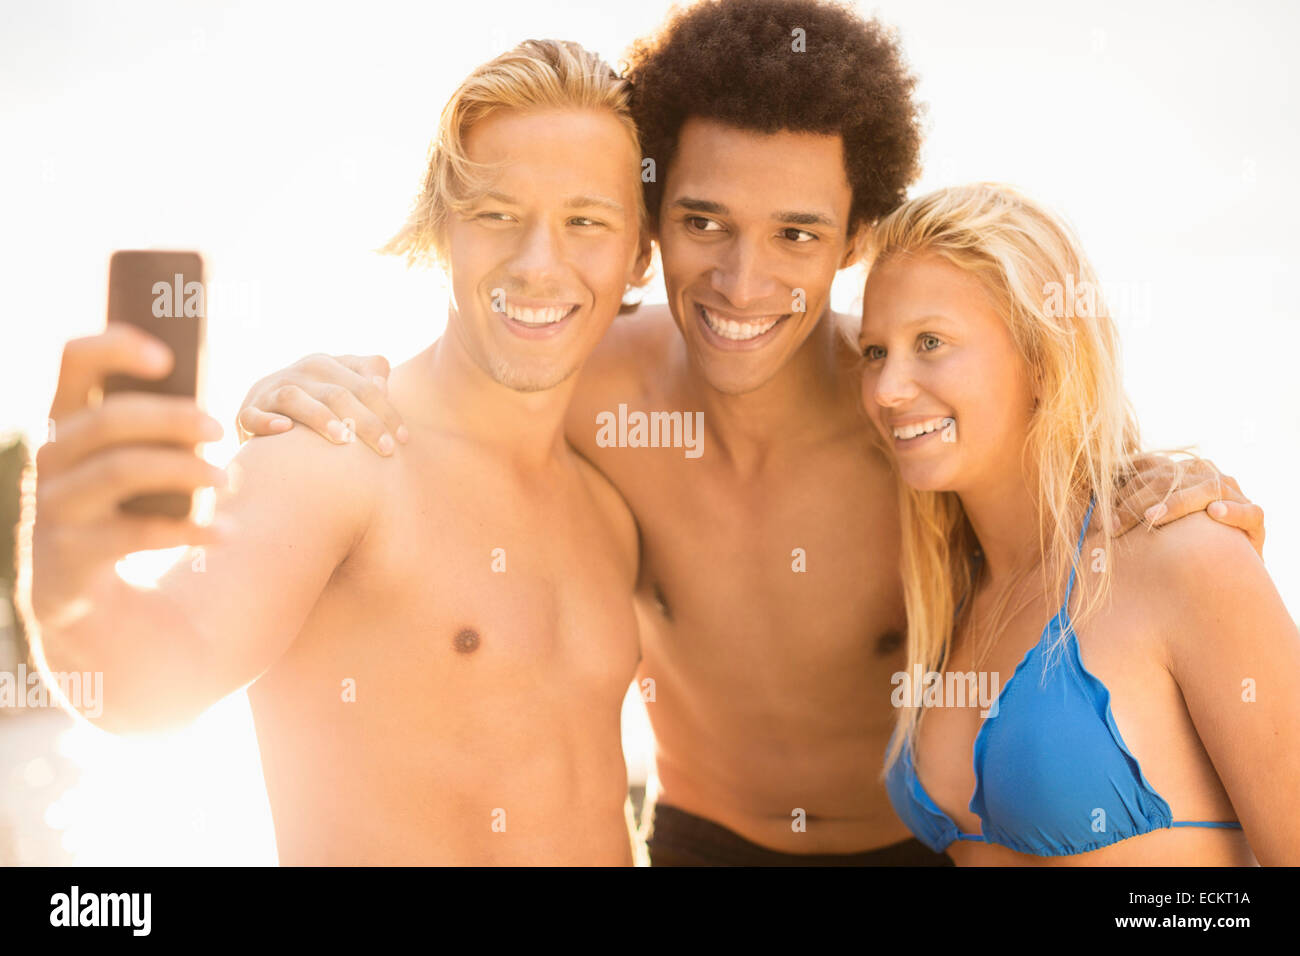 Friends taking self portrait on sunny day - Stock Image